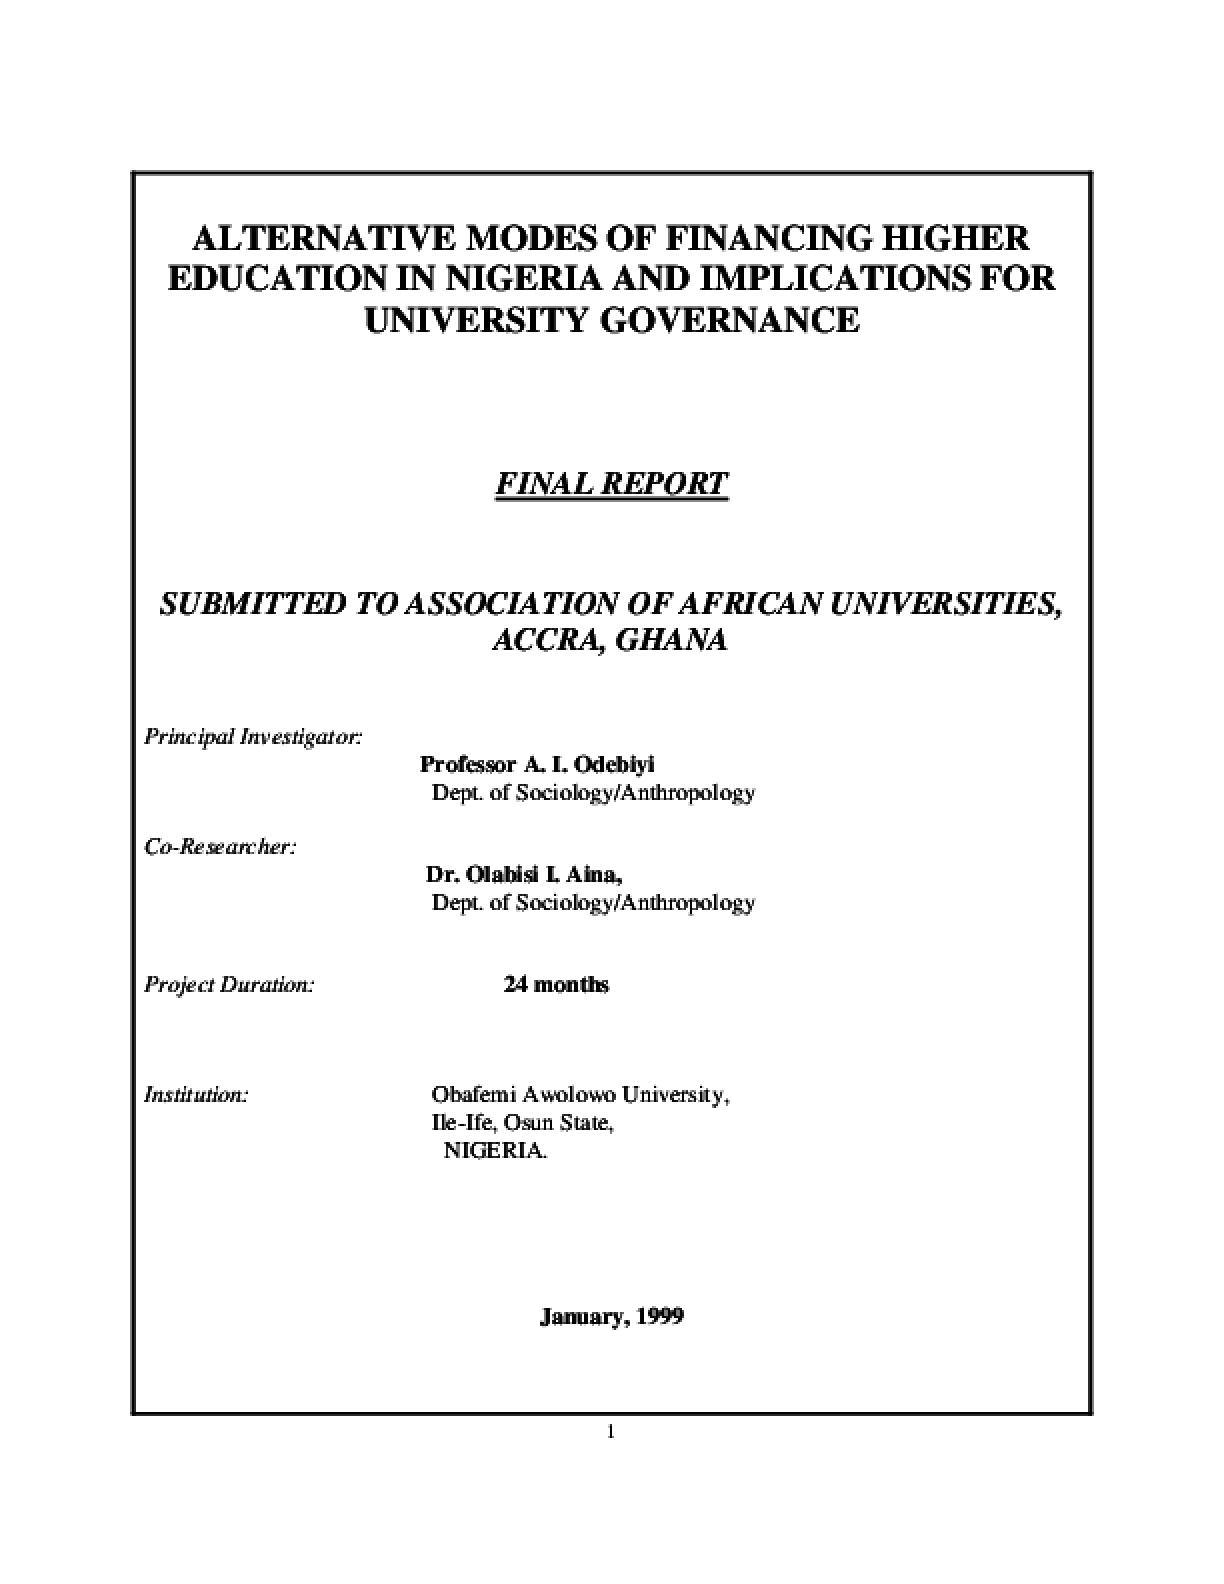 Alternative Modes of Financing Higher Education in Nigeria and the Implications for University Governance